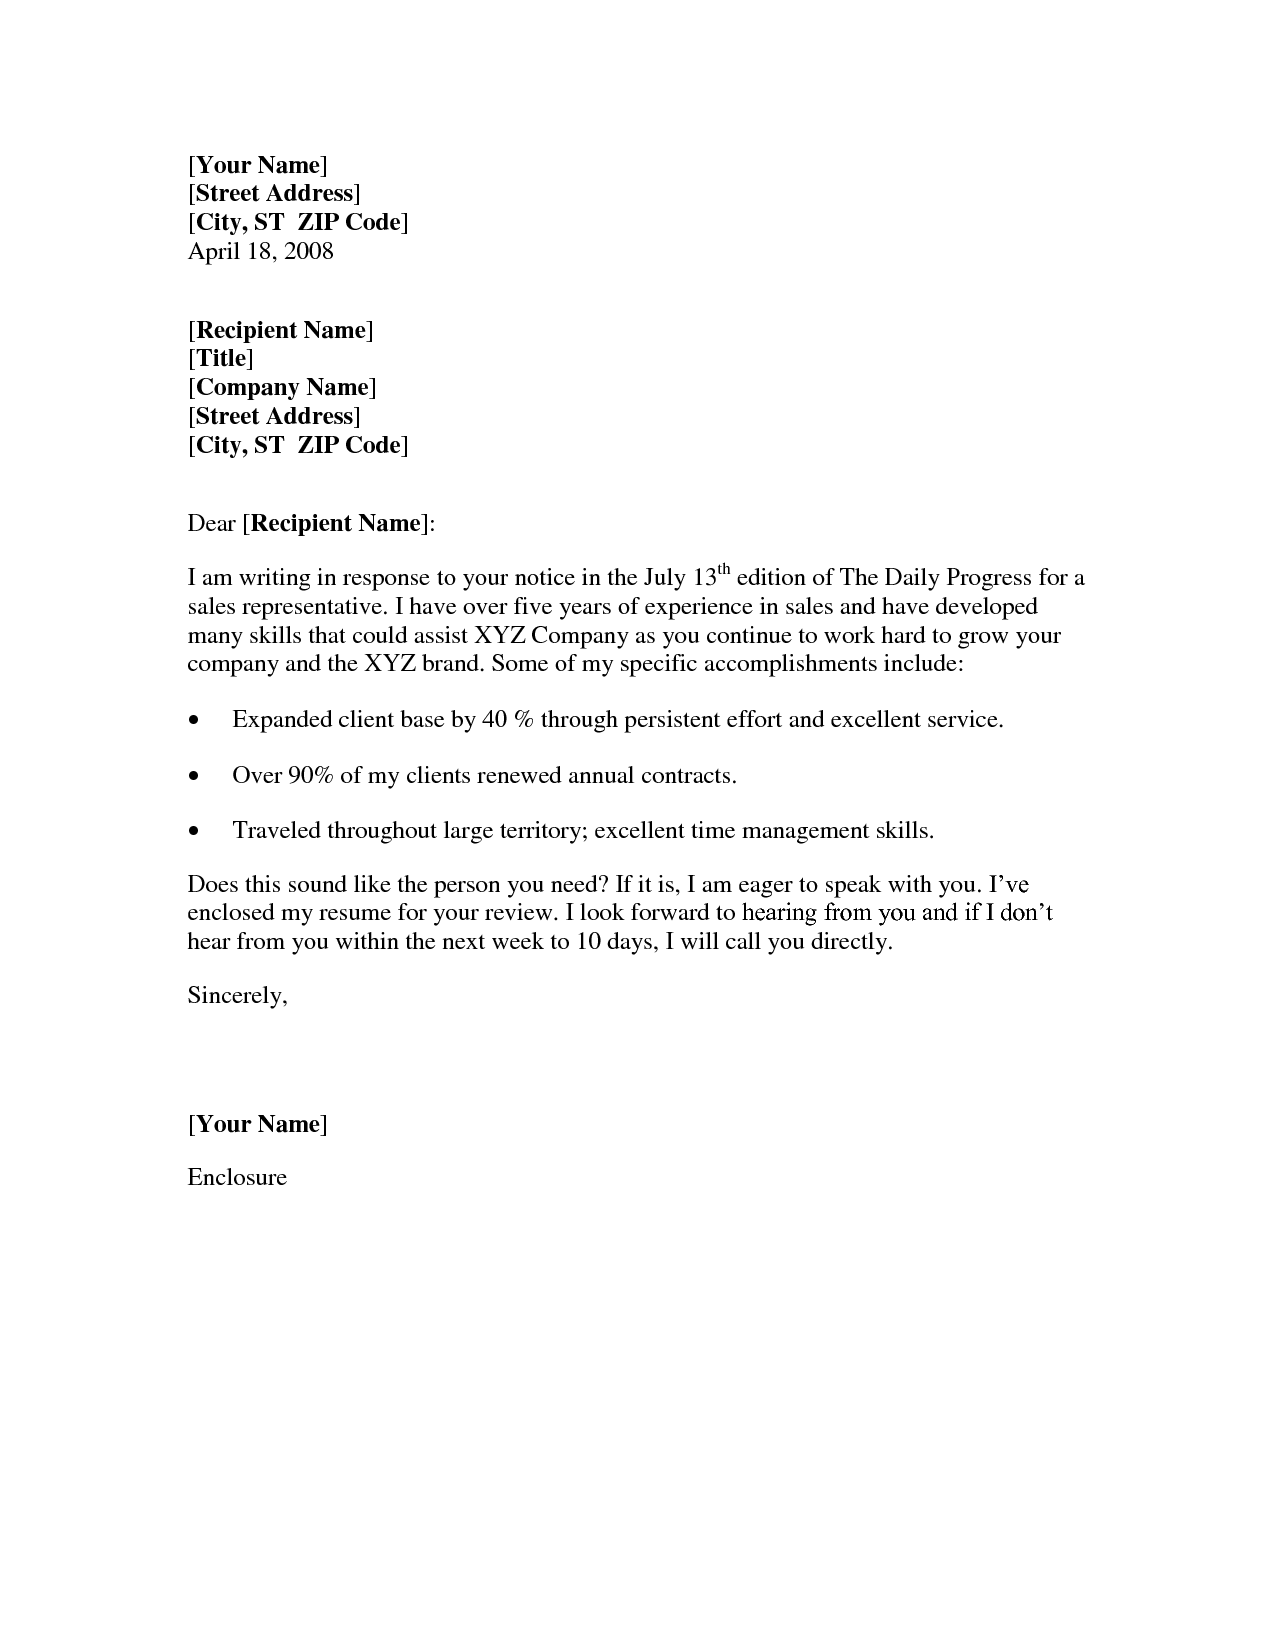 Free Cover Letter And Resume Builder Samples Printable Fax Format Sample